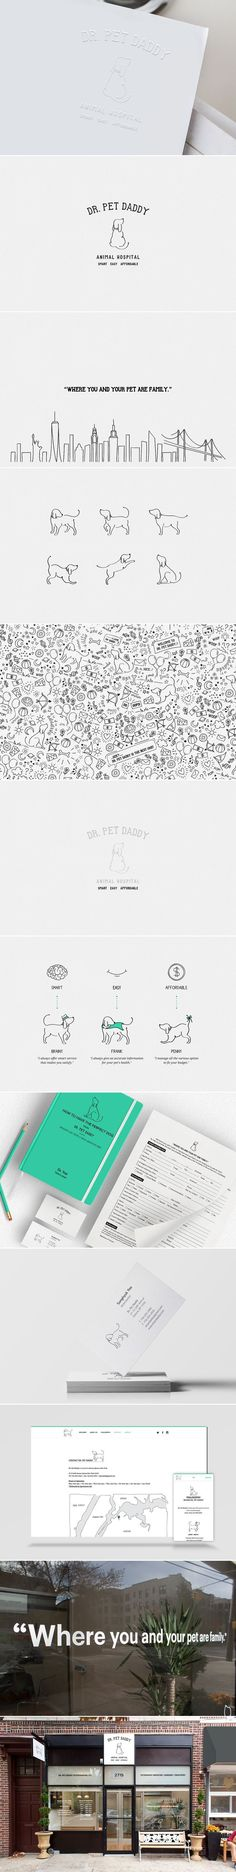 [ Dr. Pet Daddy ] [ Credit: Hyun Sul ] [ Graphic Design, Identity Design, Logo Design, Package Design, Editorial Design, Art Direction, Branding, Web Design, Photography, Interior Design, Illustration, Drawing ] - Tap the pin for the most adorable pawtastic fur baby apparel! You'll love the dog clothes and cat clothes!